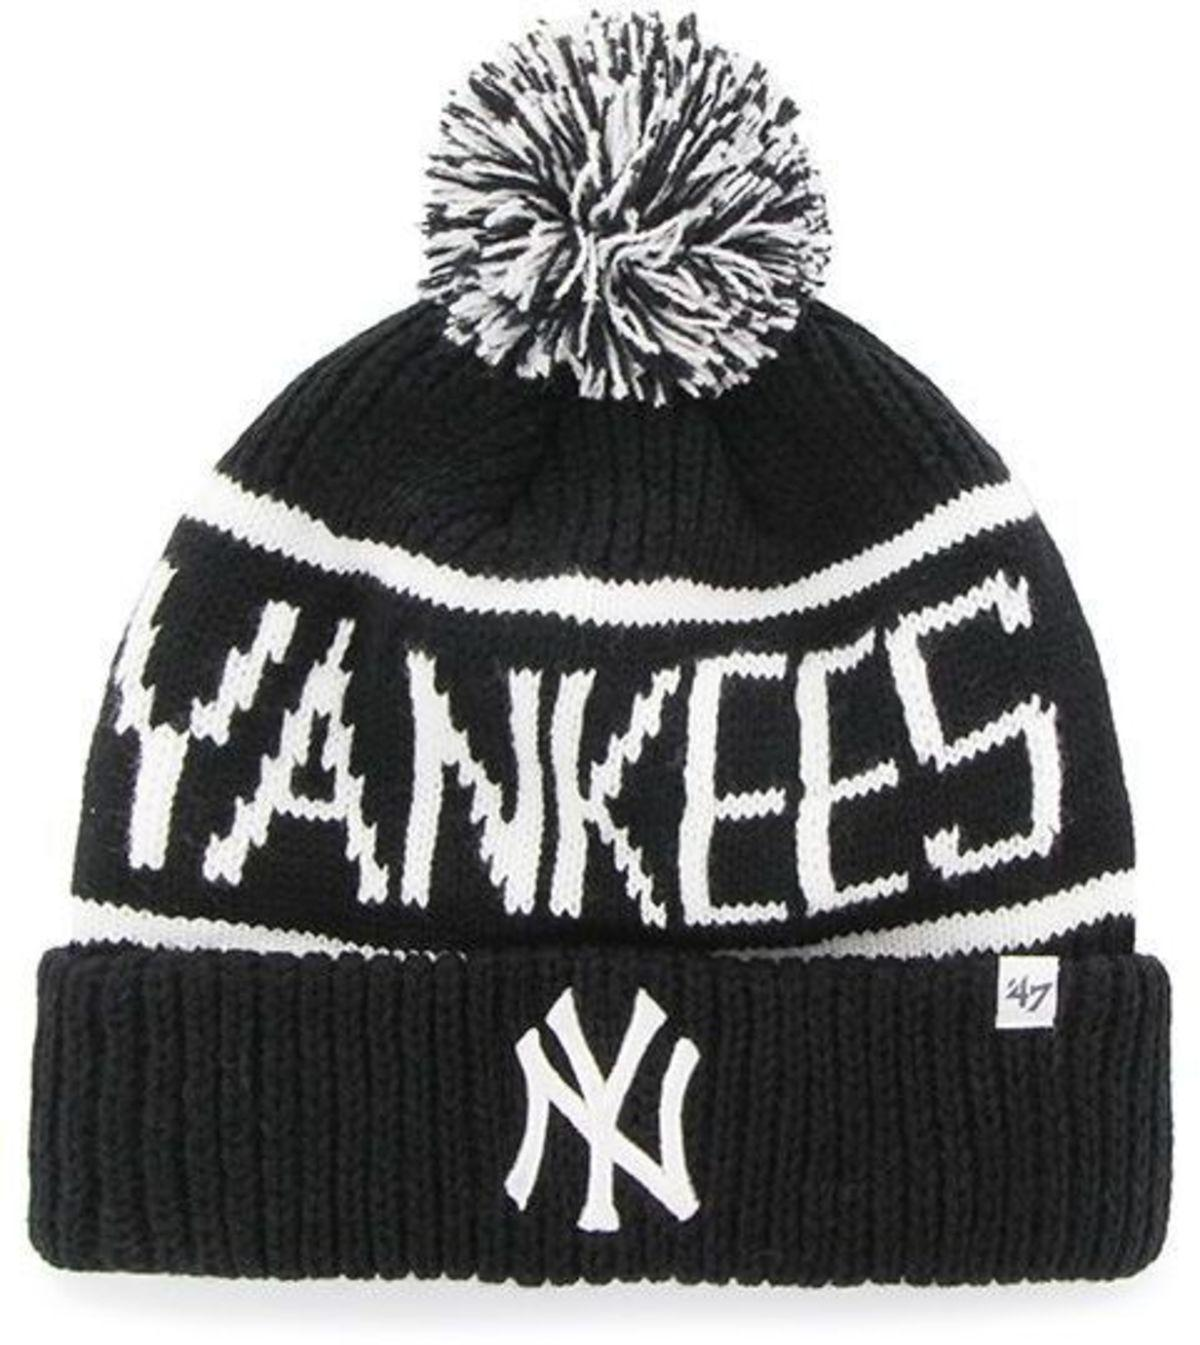 02b1b6745 ... coupon code for new era mens essential ny yankees cuff knit beanie  black black one 47